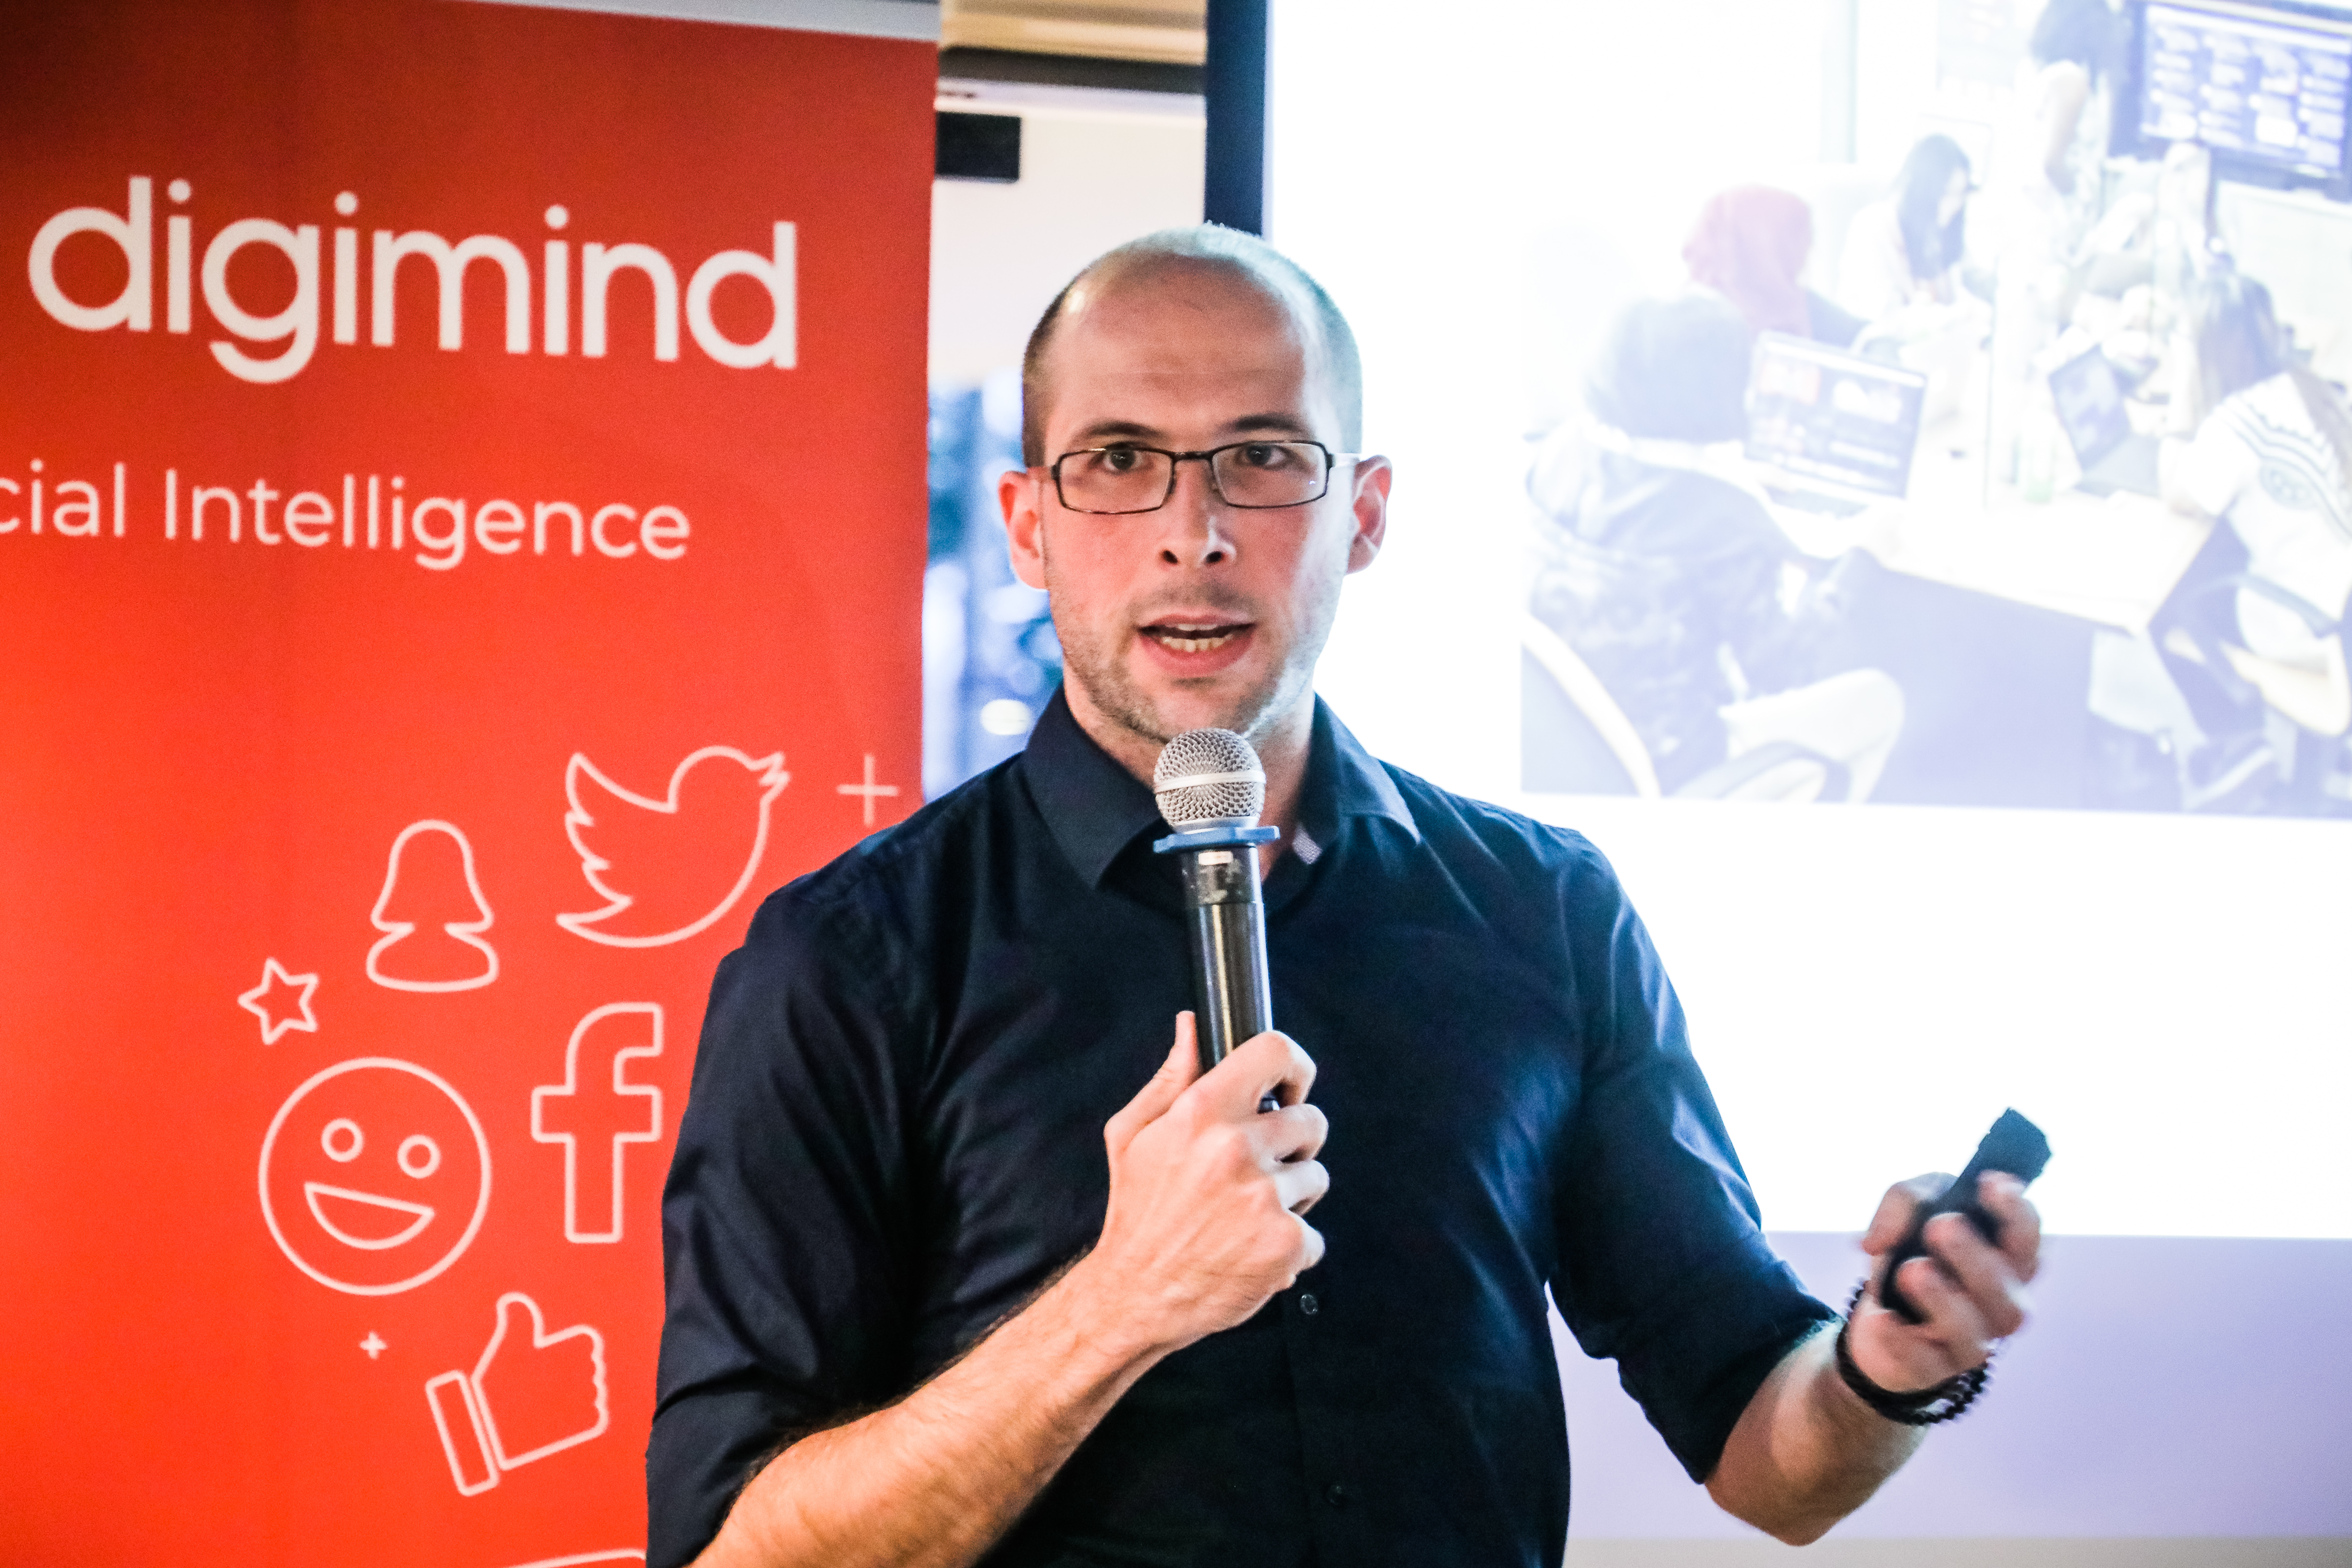 Socialize Singapore Guest Speaker Marco Sparmberg